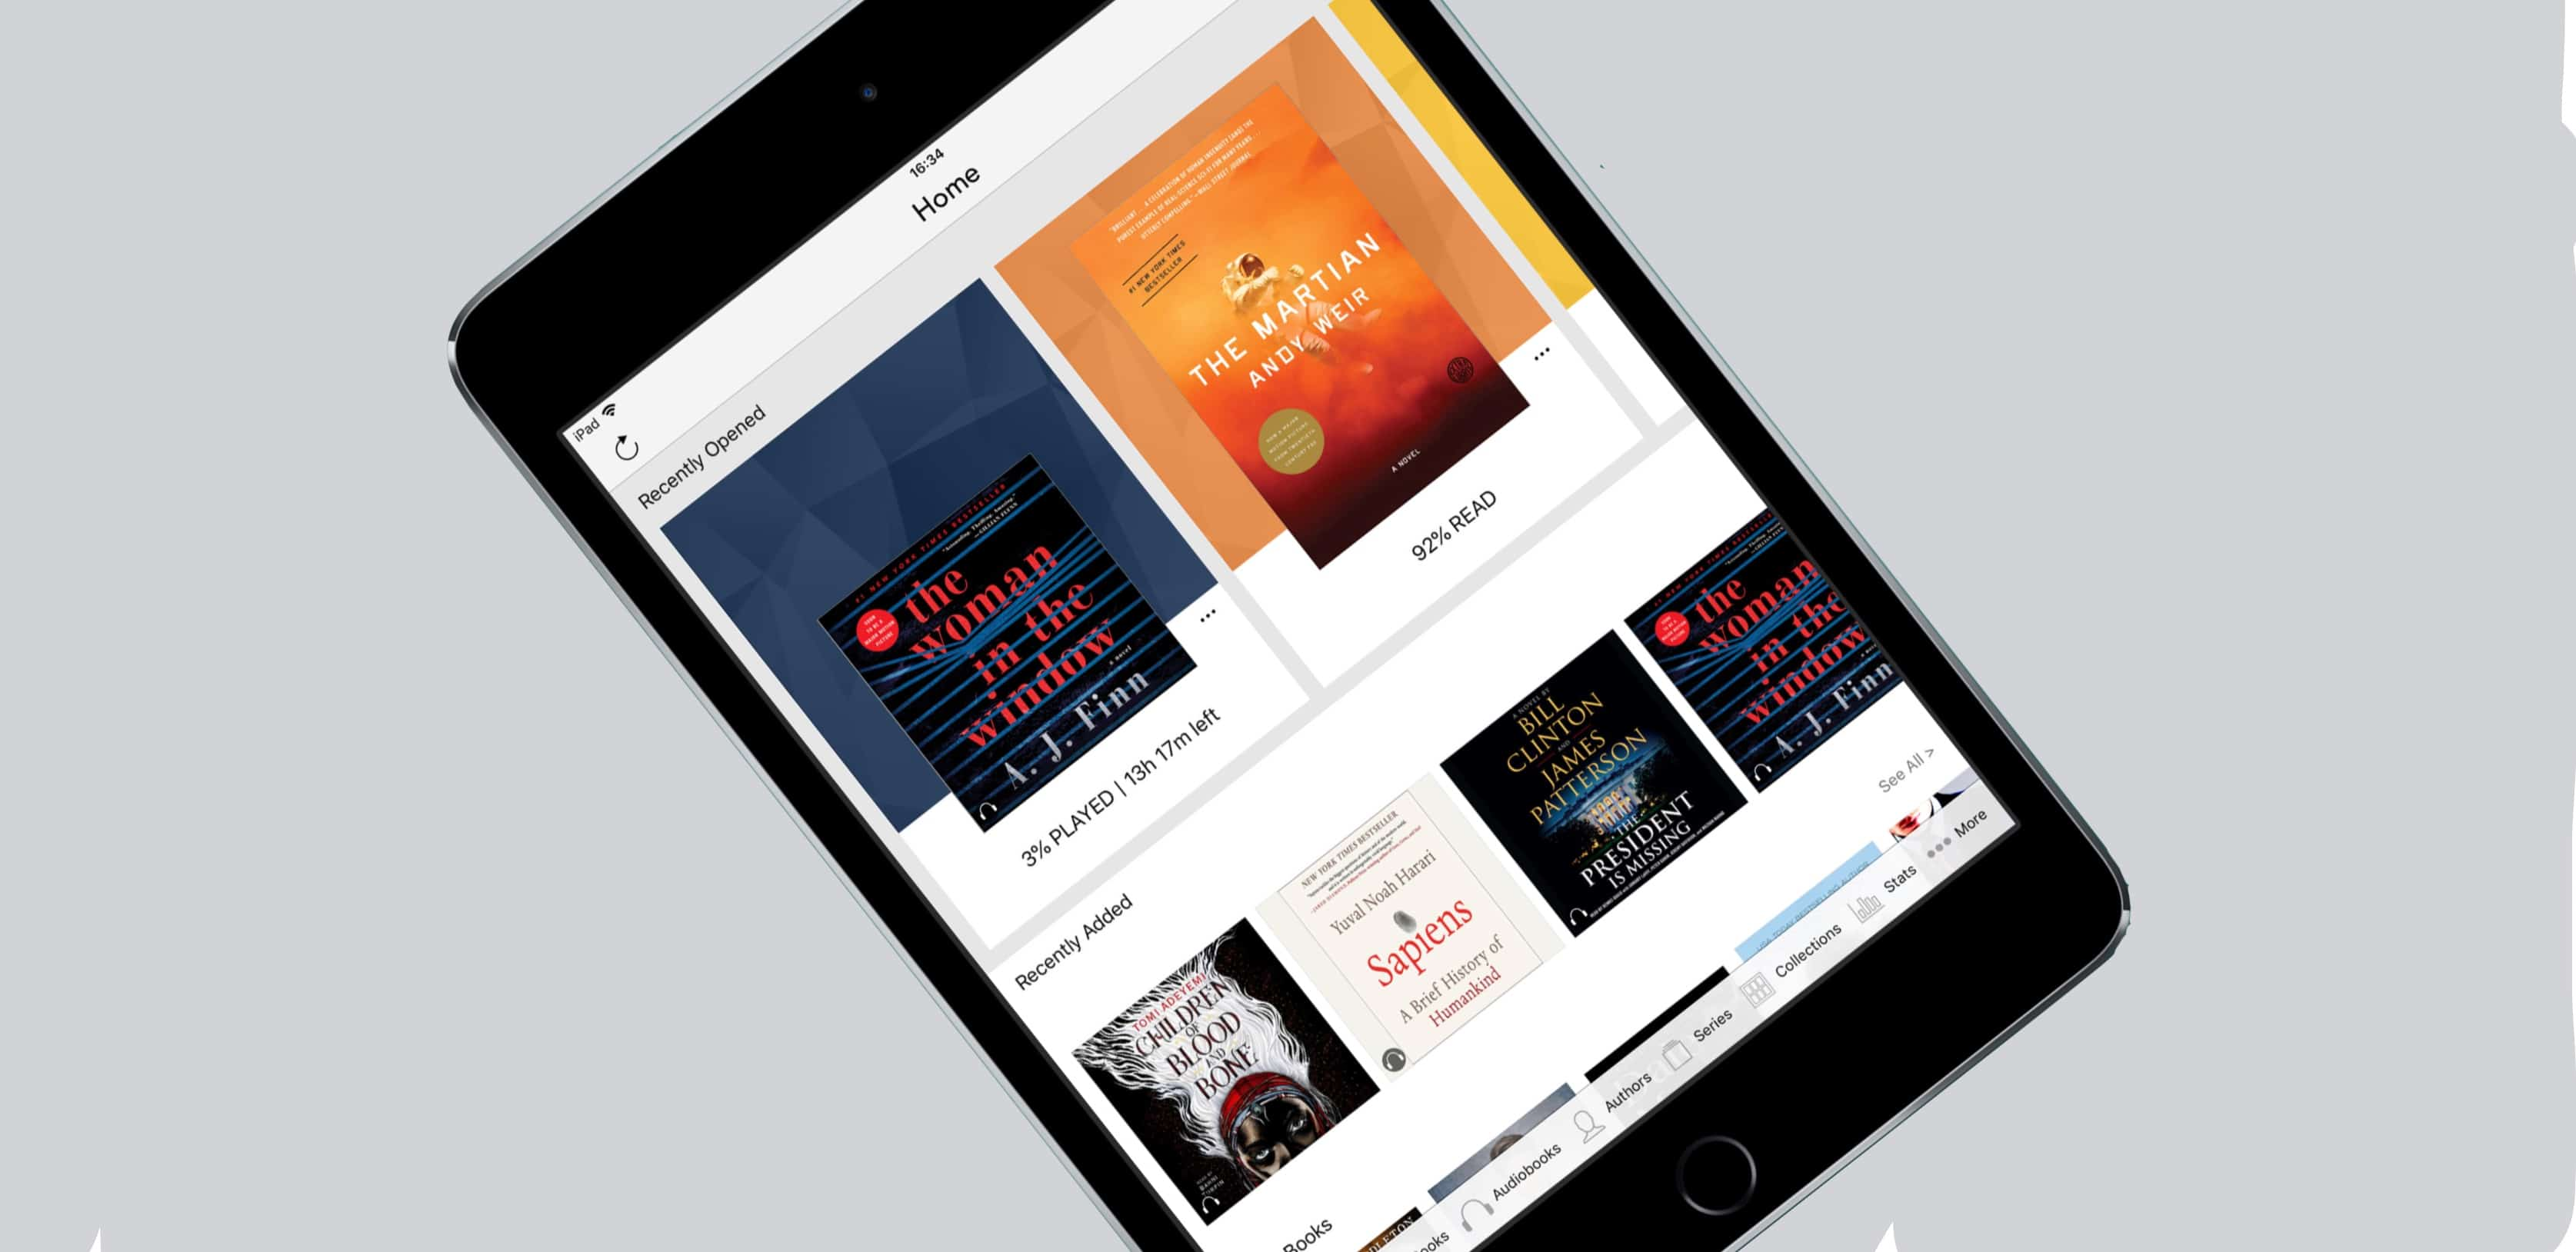 A Walmart eBooks iOS app just launched, hoping to take on the established leaders in the market.